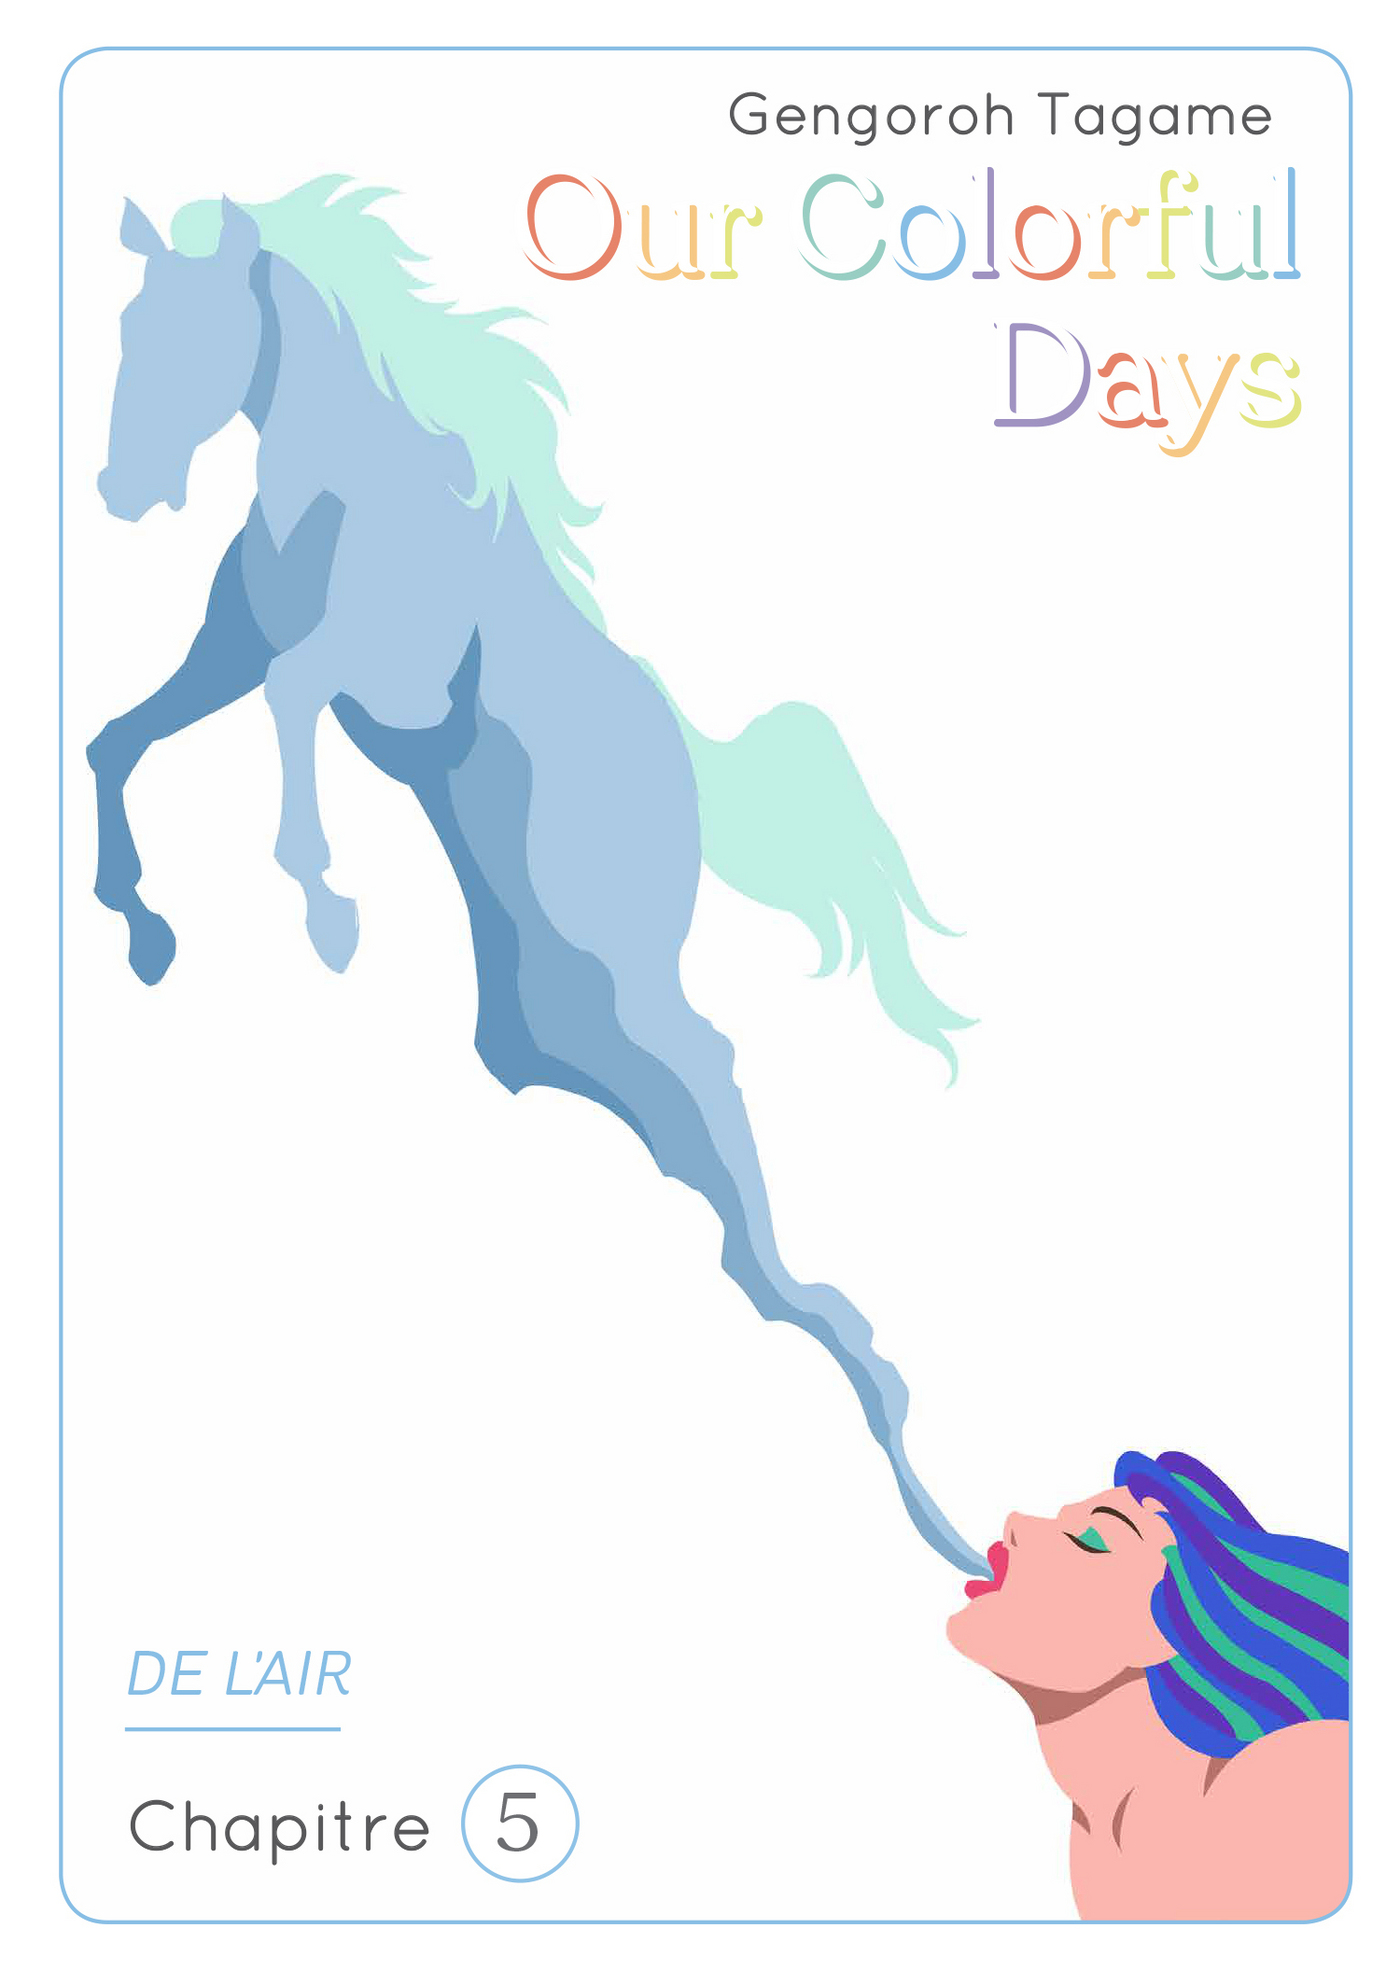 Our colorful Days - chapitre 5